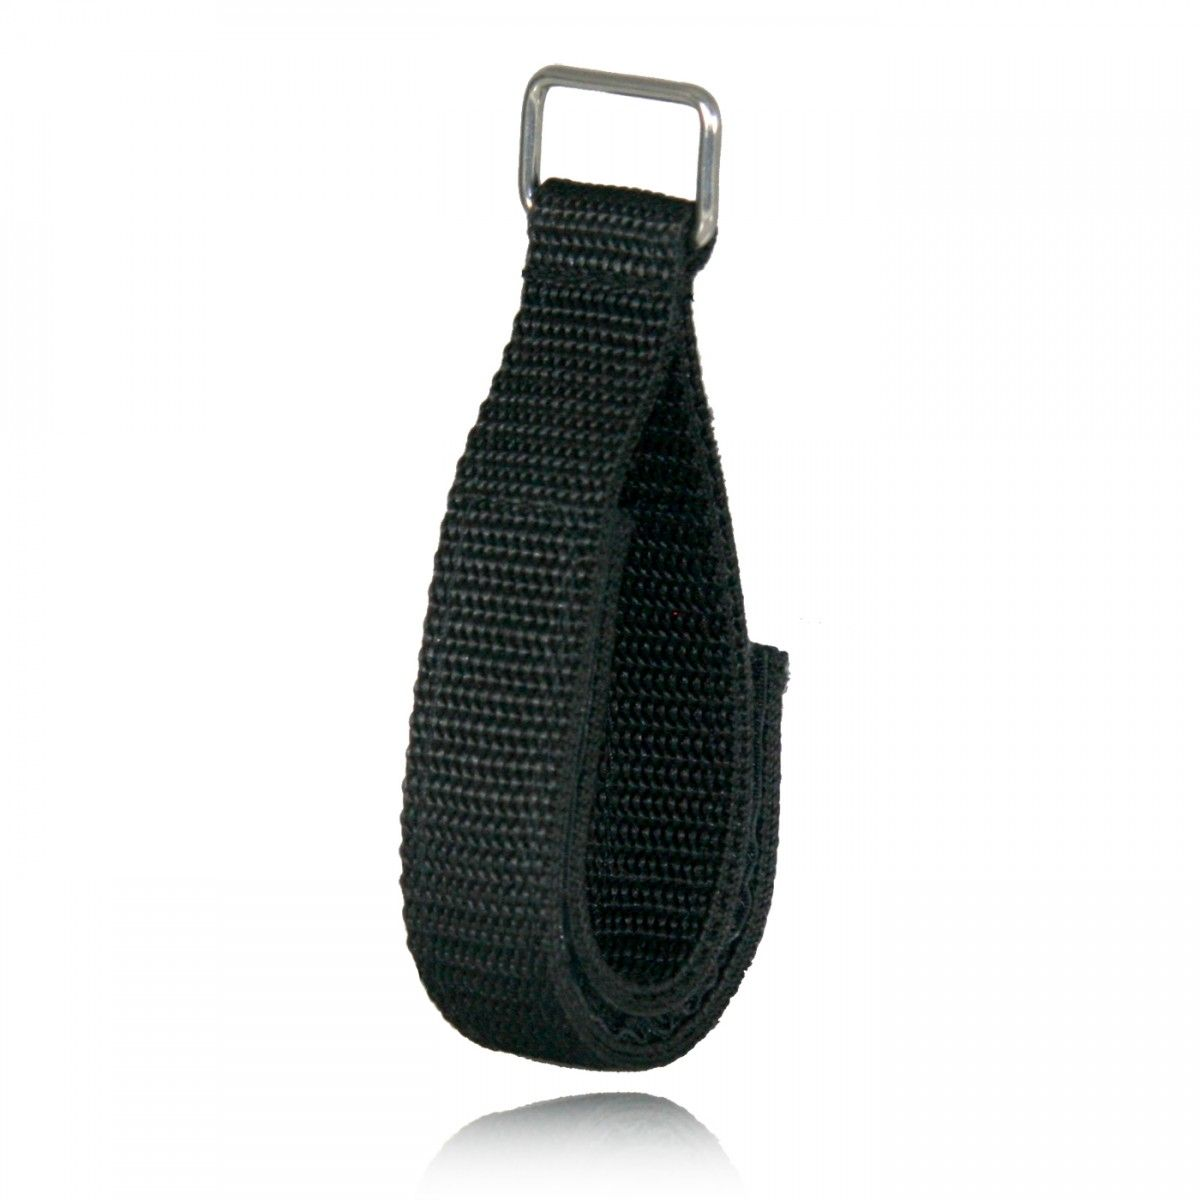 Firefighter's Glove Strap with Square Ring, Ballistic Weave